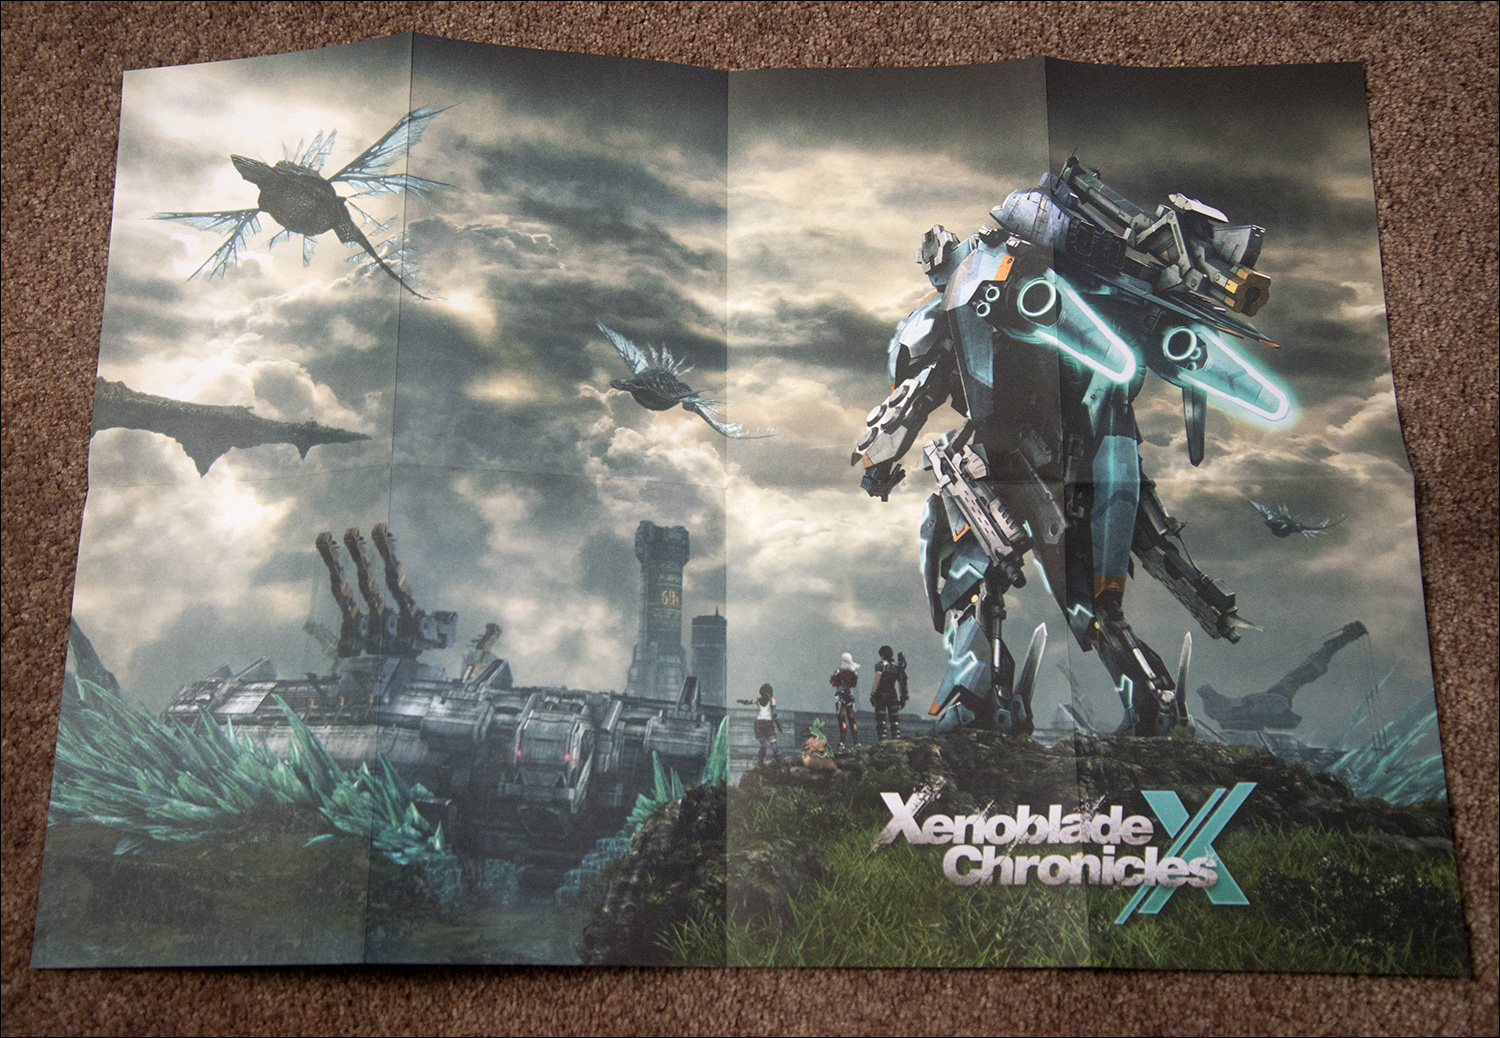 Xenoblade-Chronicles-X-Limited-Edition-Poster-Side-1